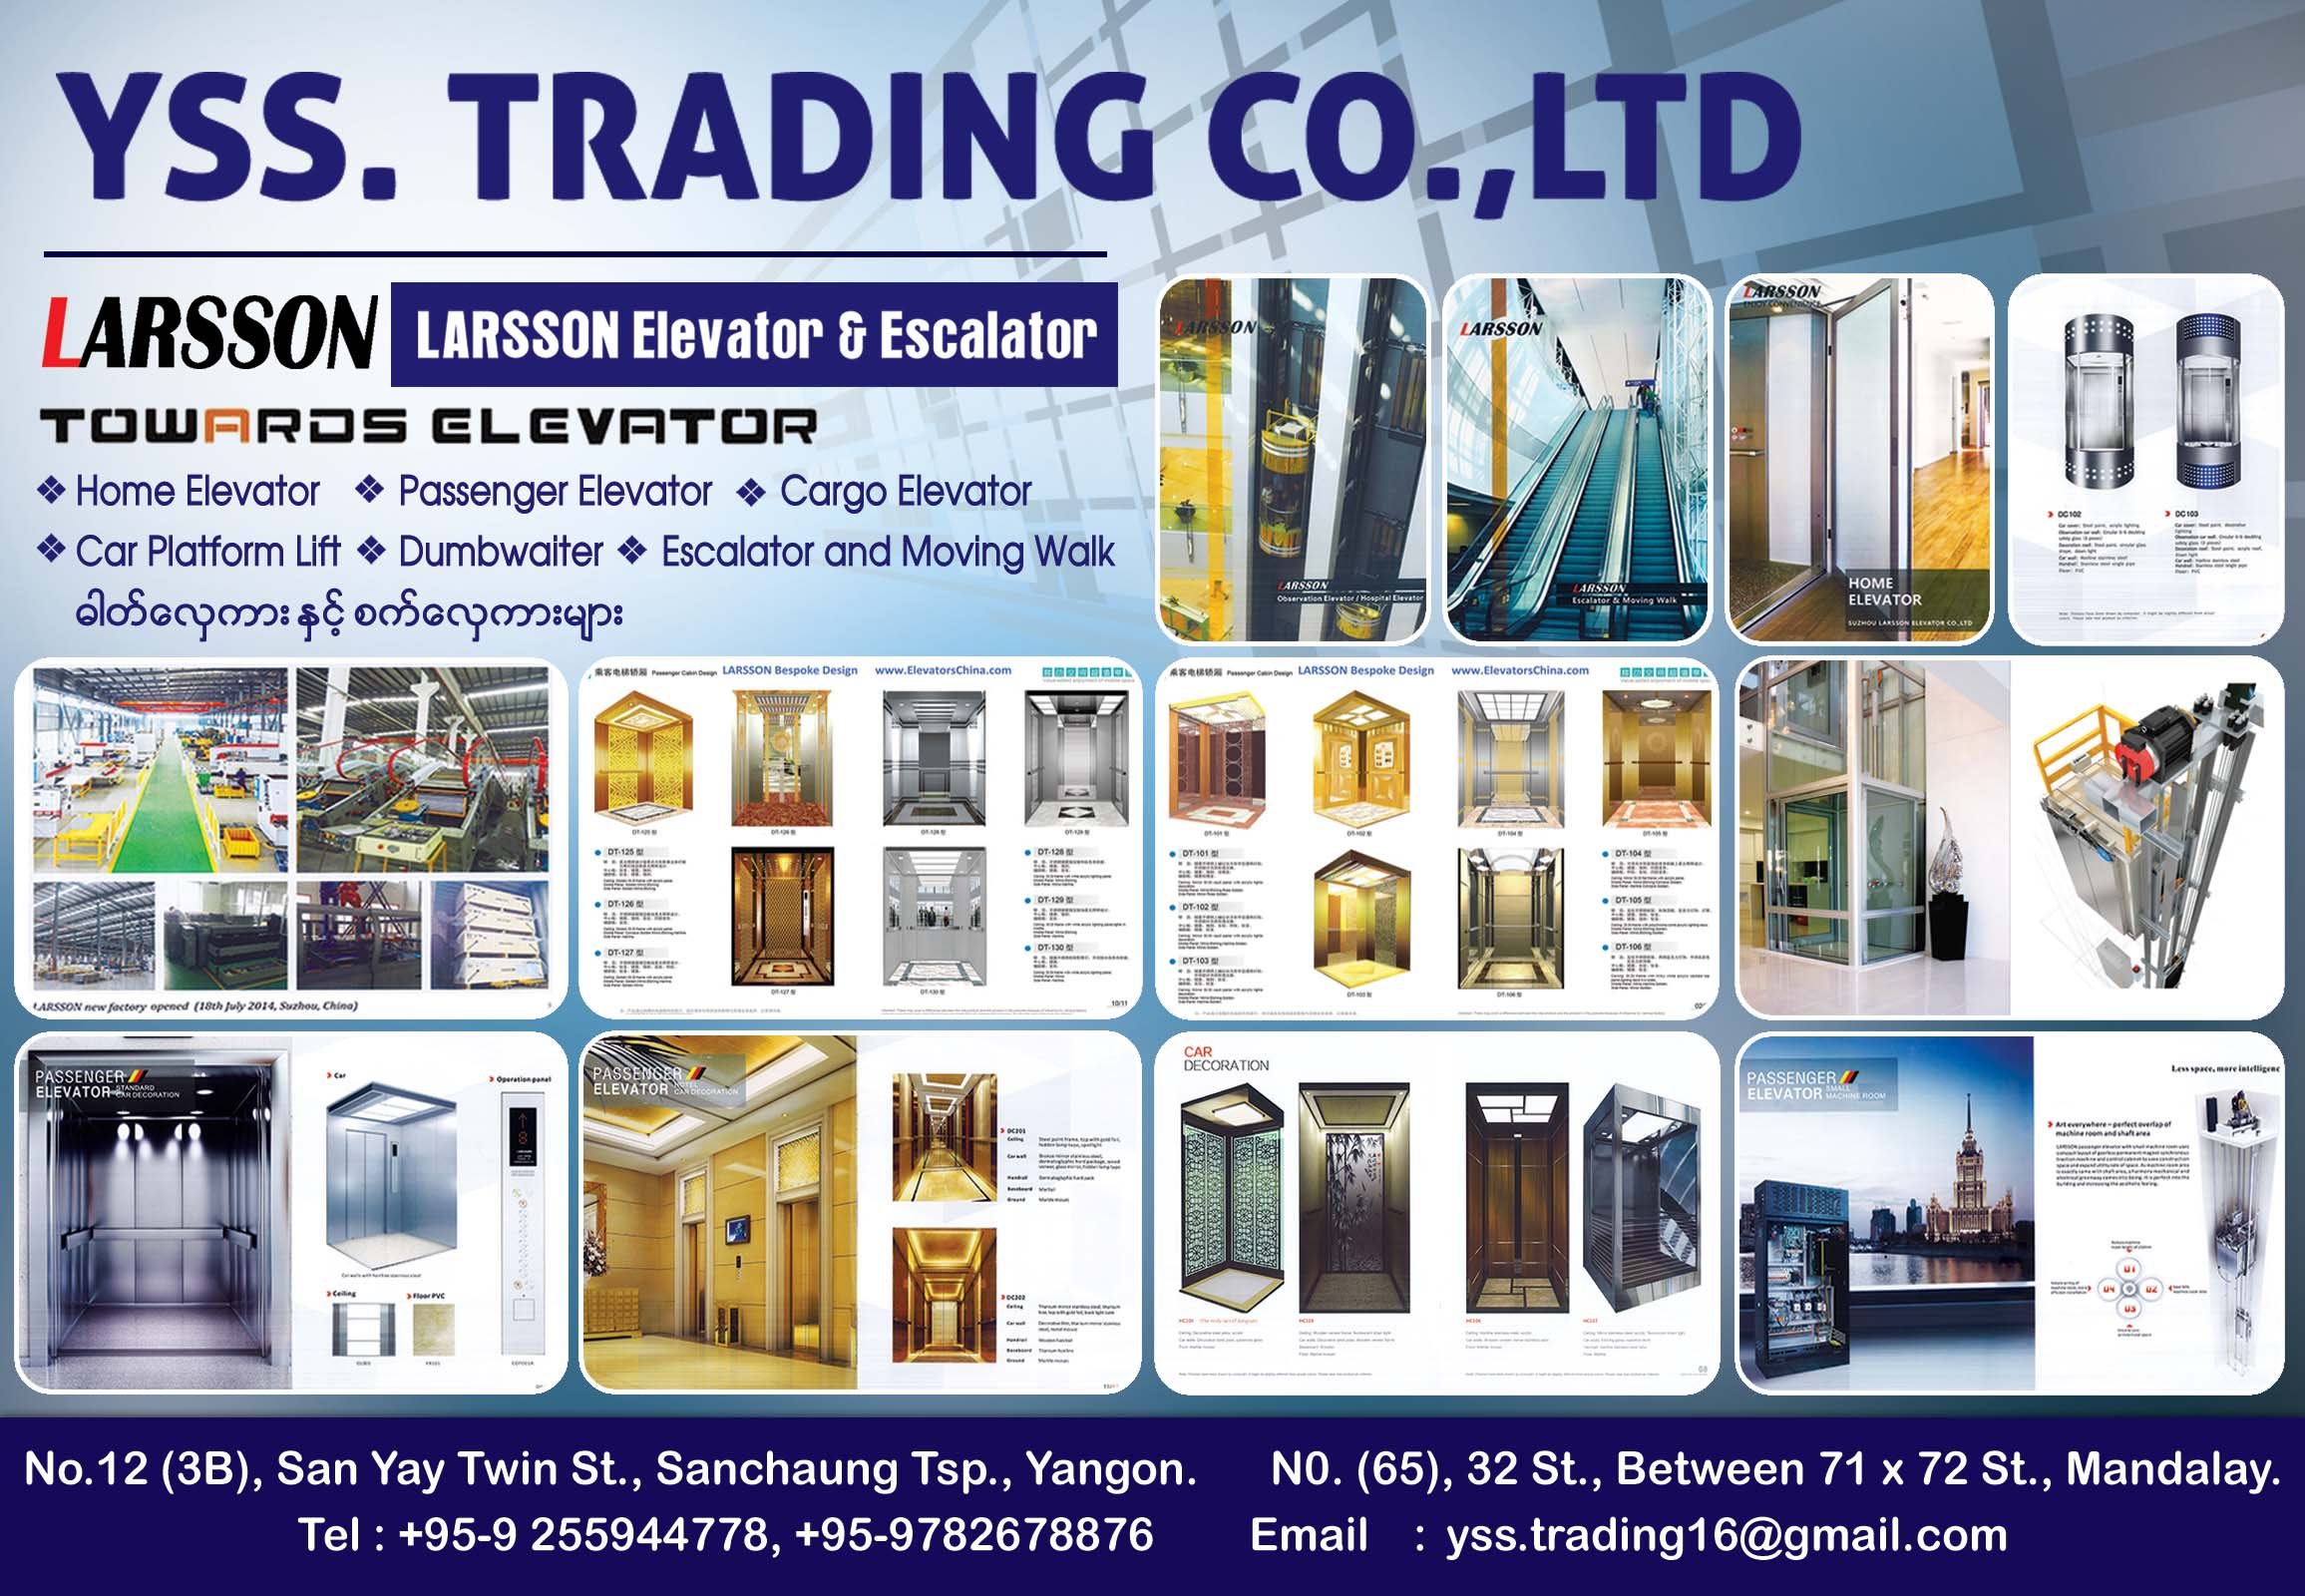 YSS. Trading Co., Ltd. (Larsson Elevator)